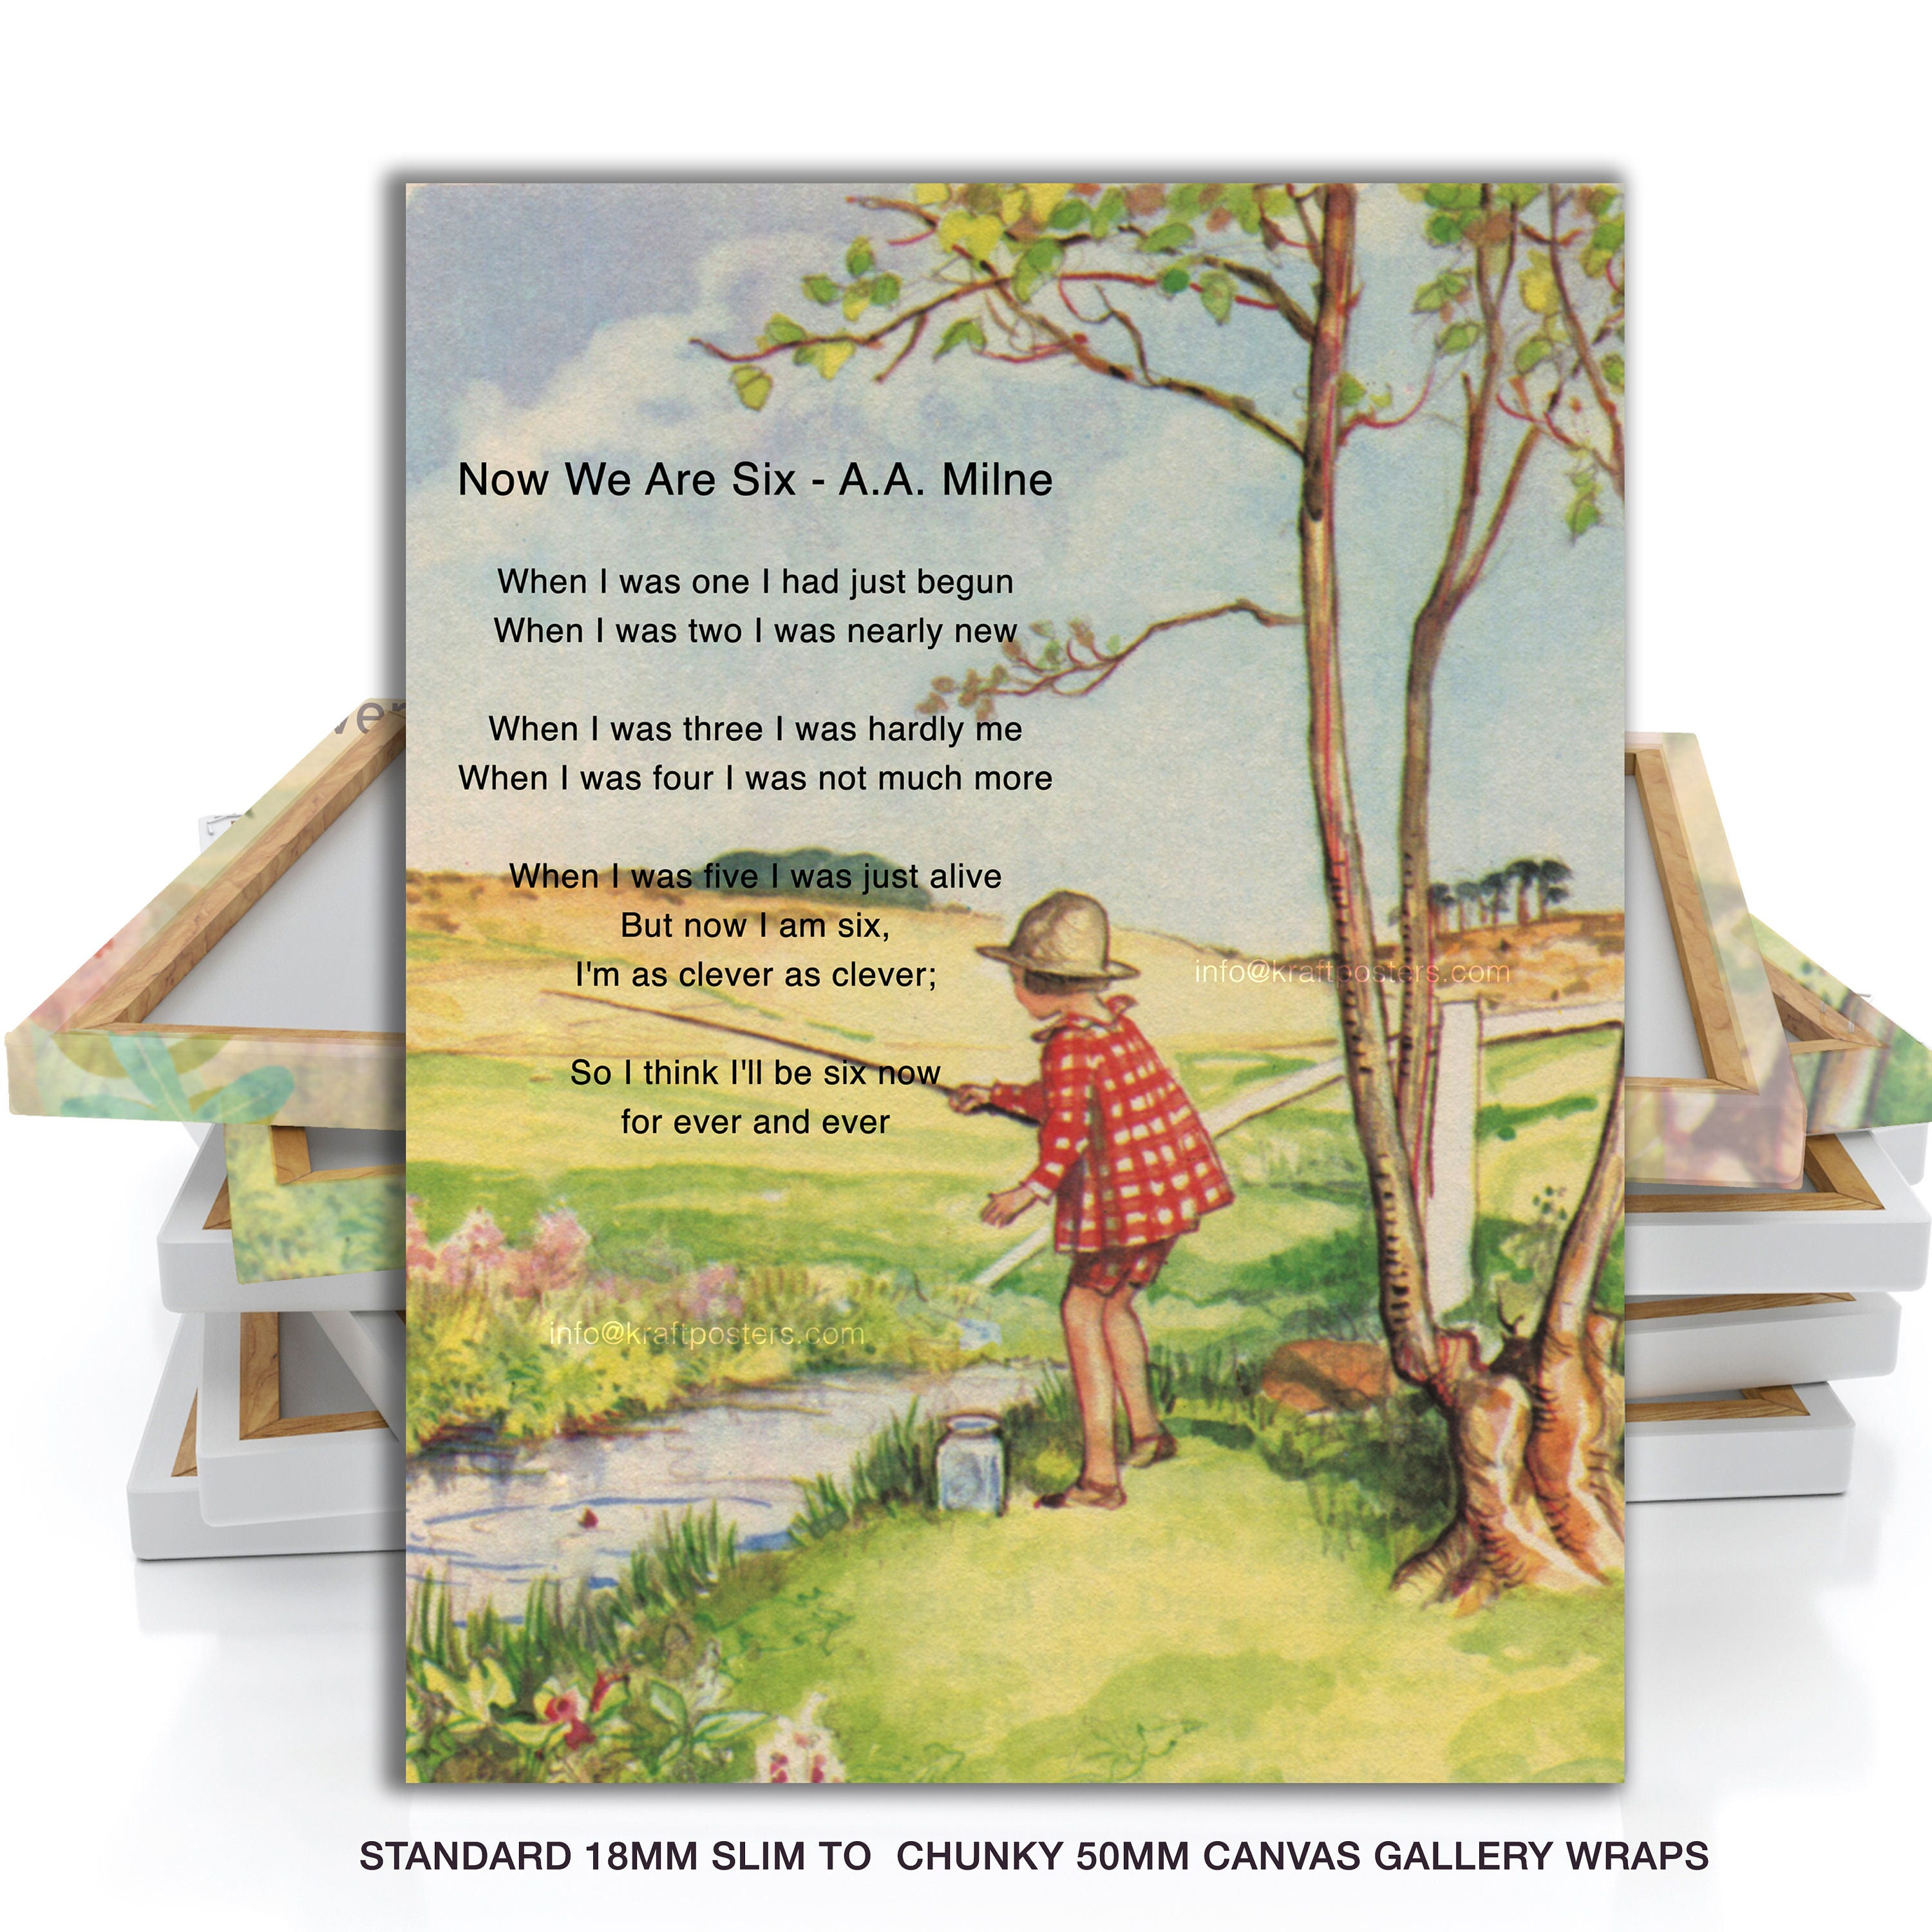 Now We Are Six Gallery Canvas Wrap Winnie The Pooh Quote